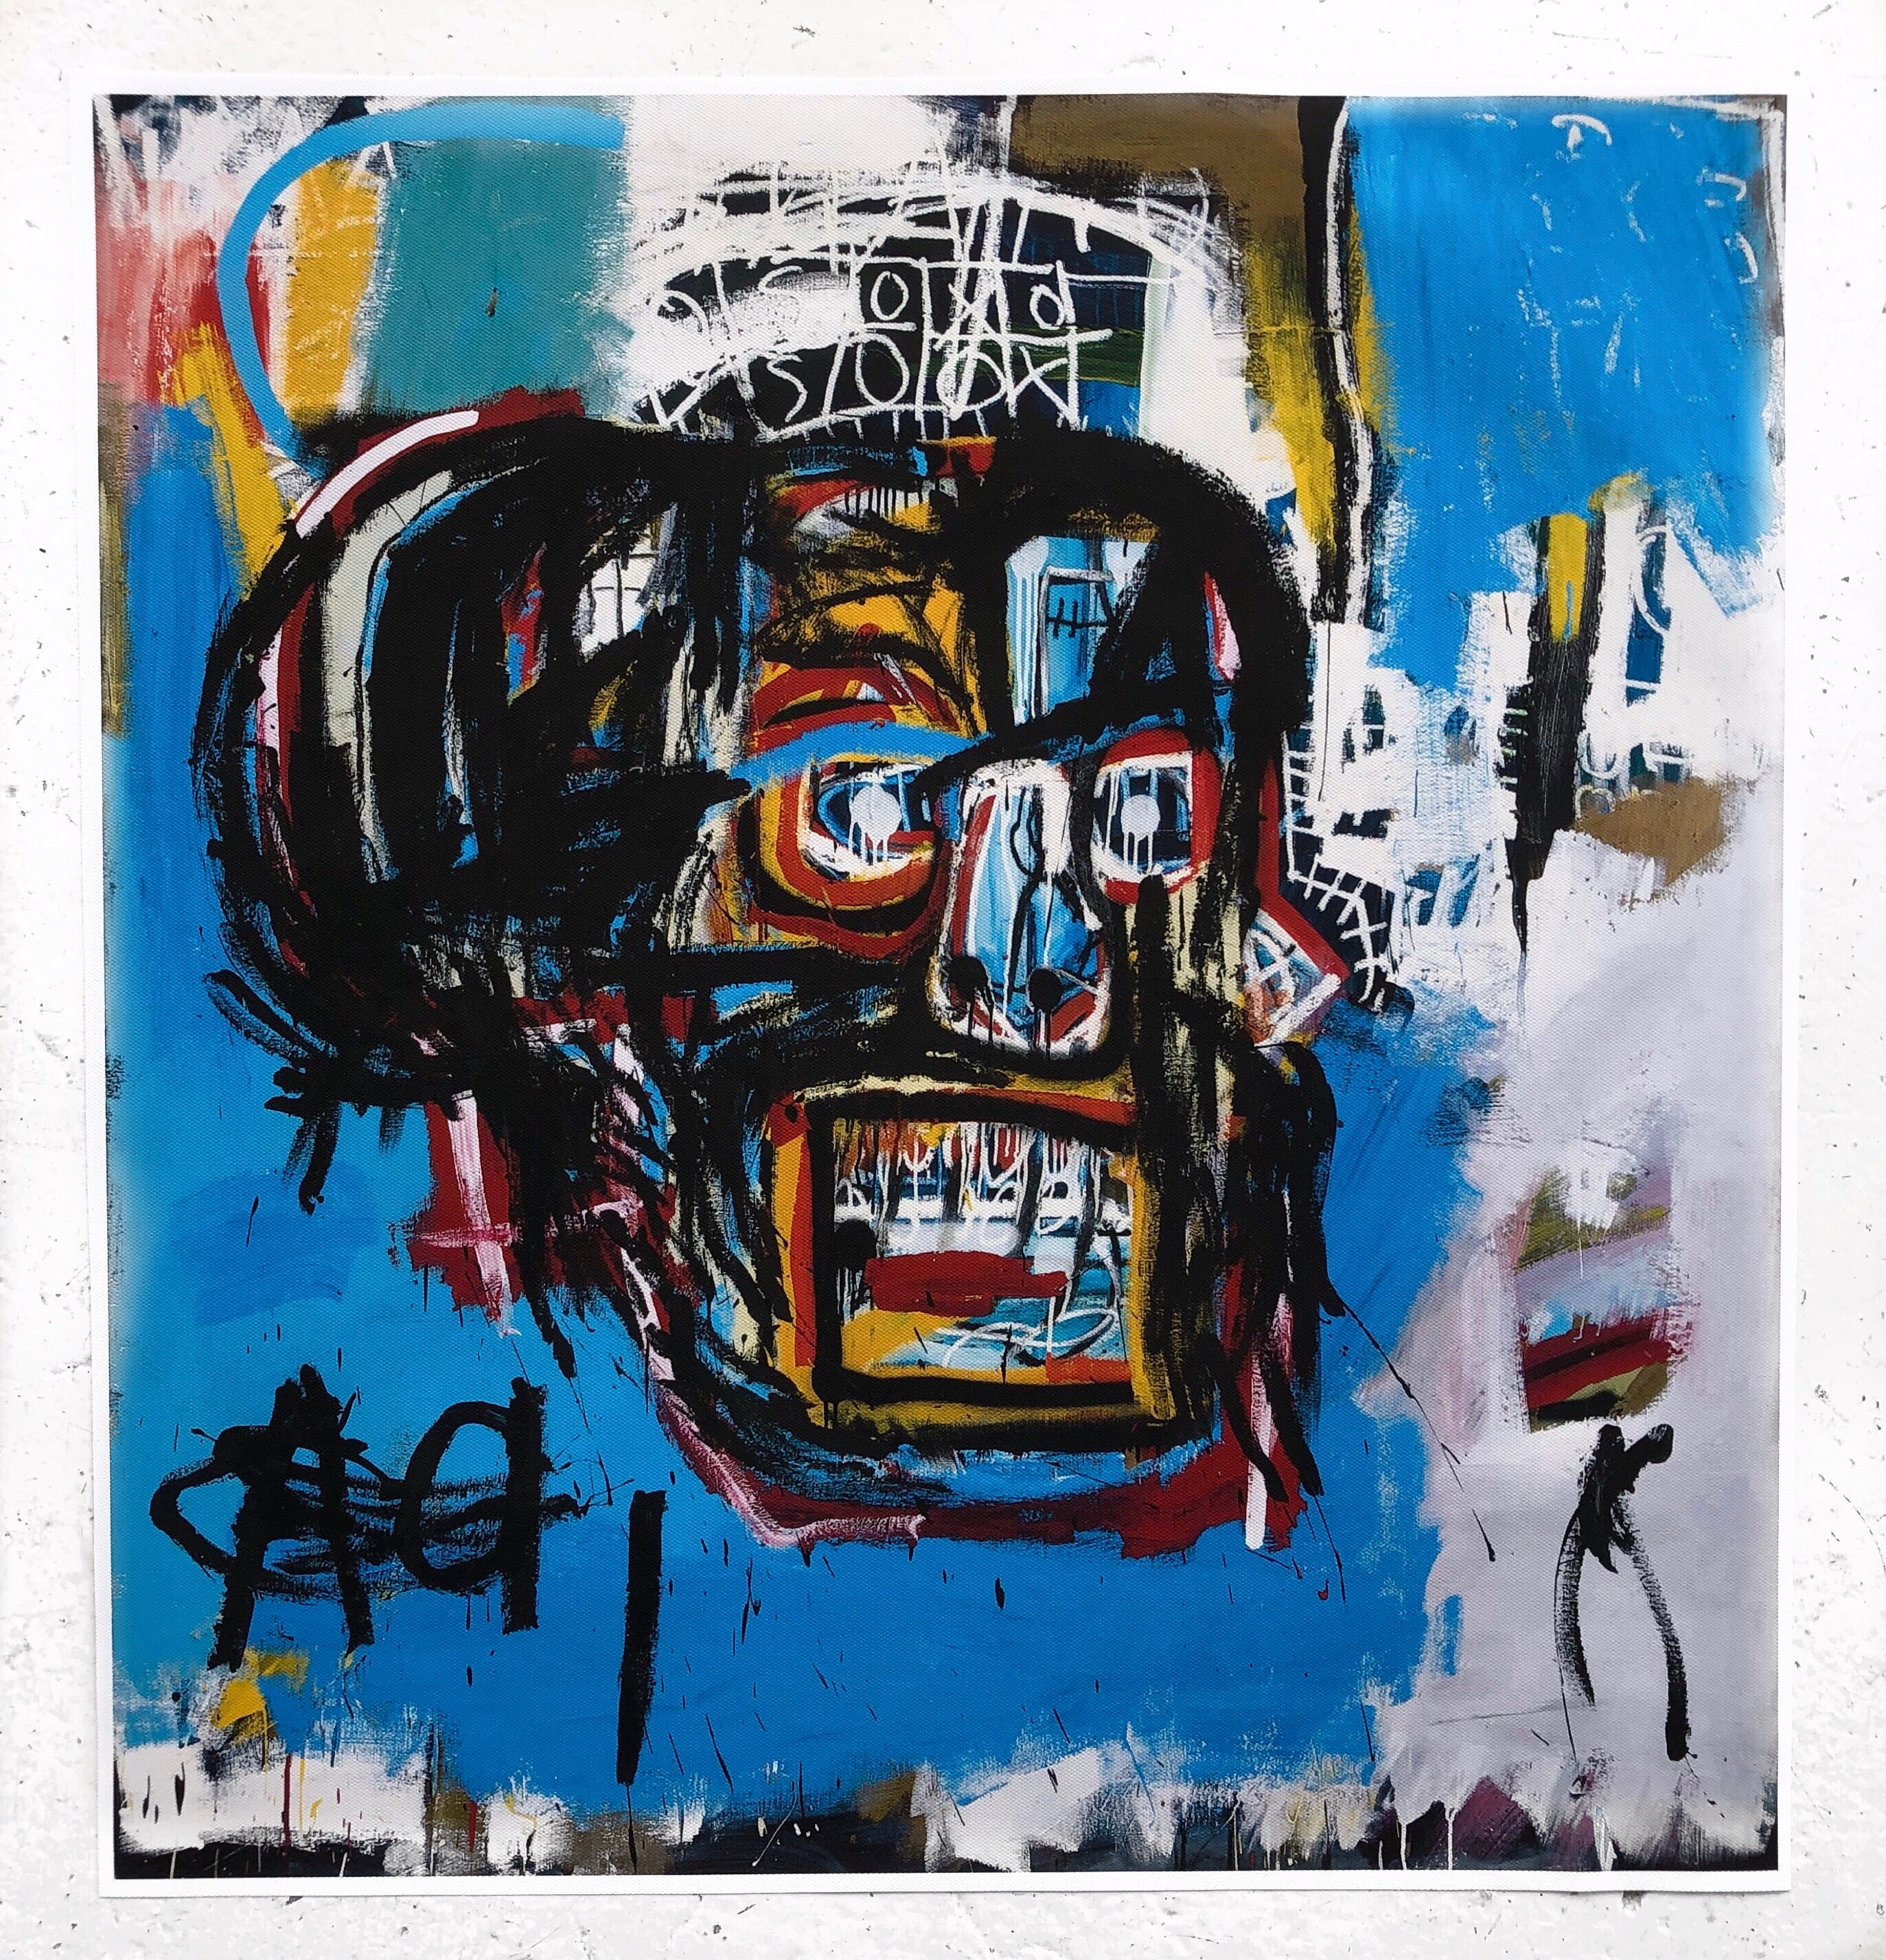 Jean-Michel Basquiat The Untitled Basquiat, From 1982